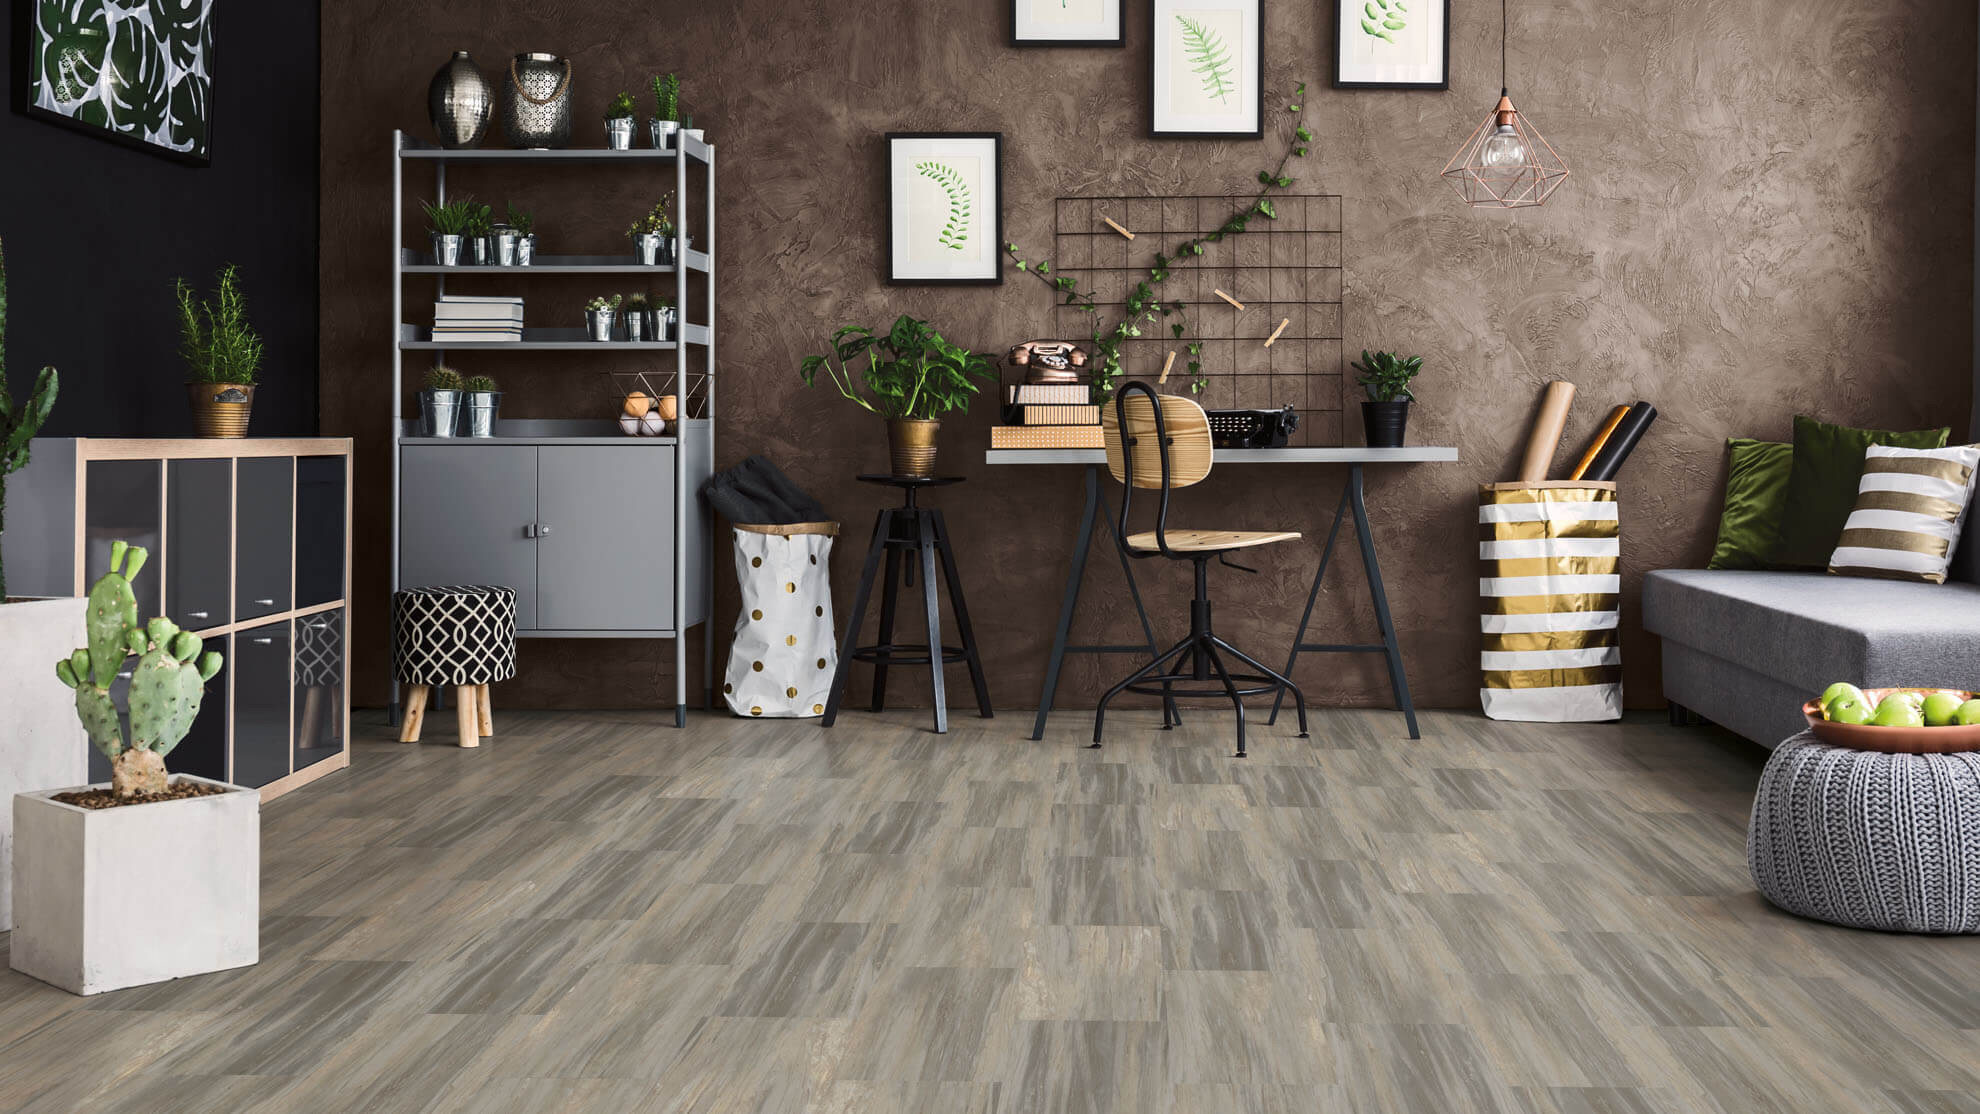 tobacco acacia hardwood flooring of earthwerks flooring in parkhill tile pkt 371